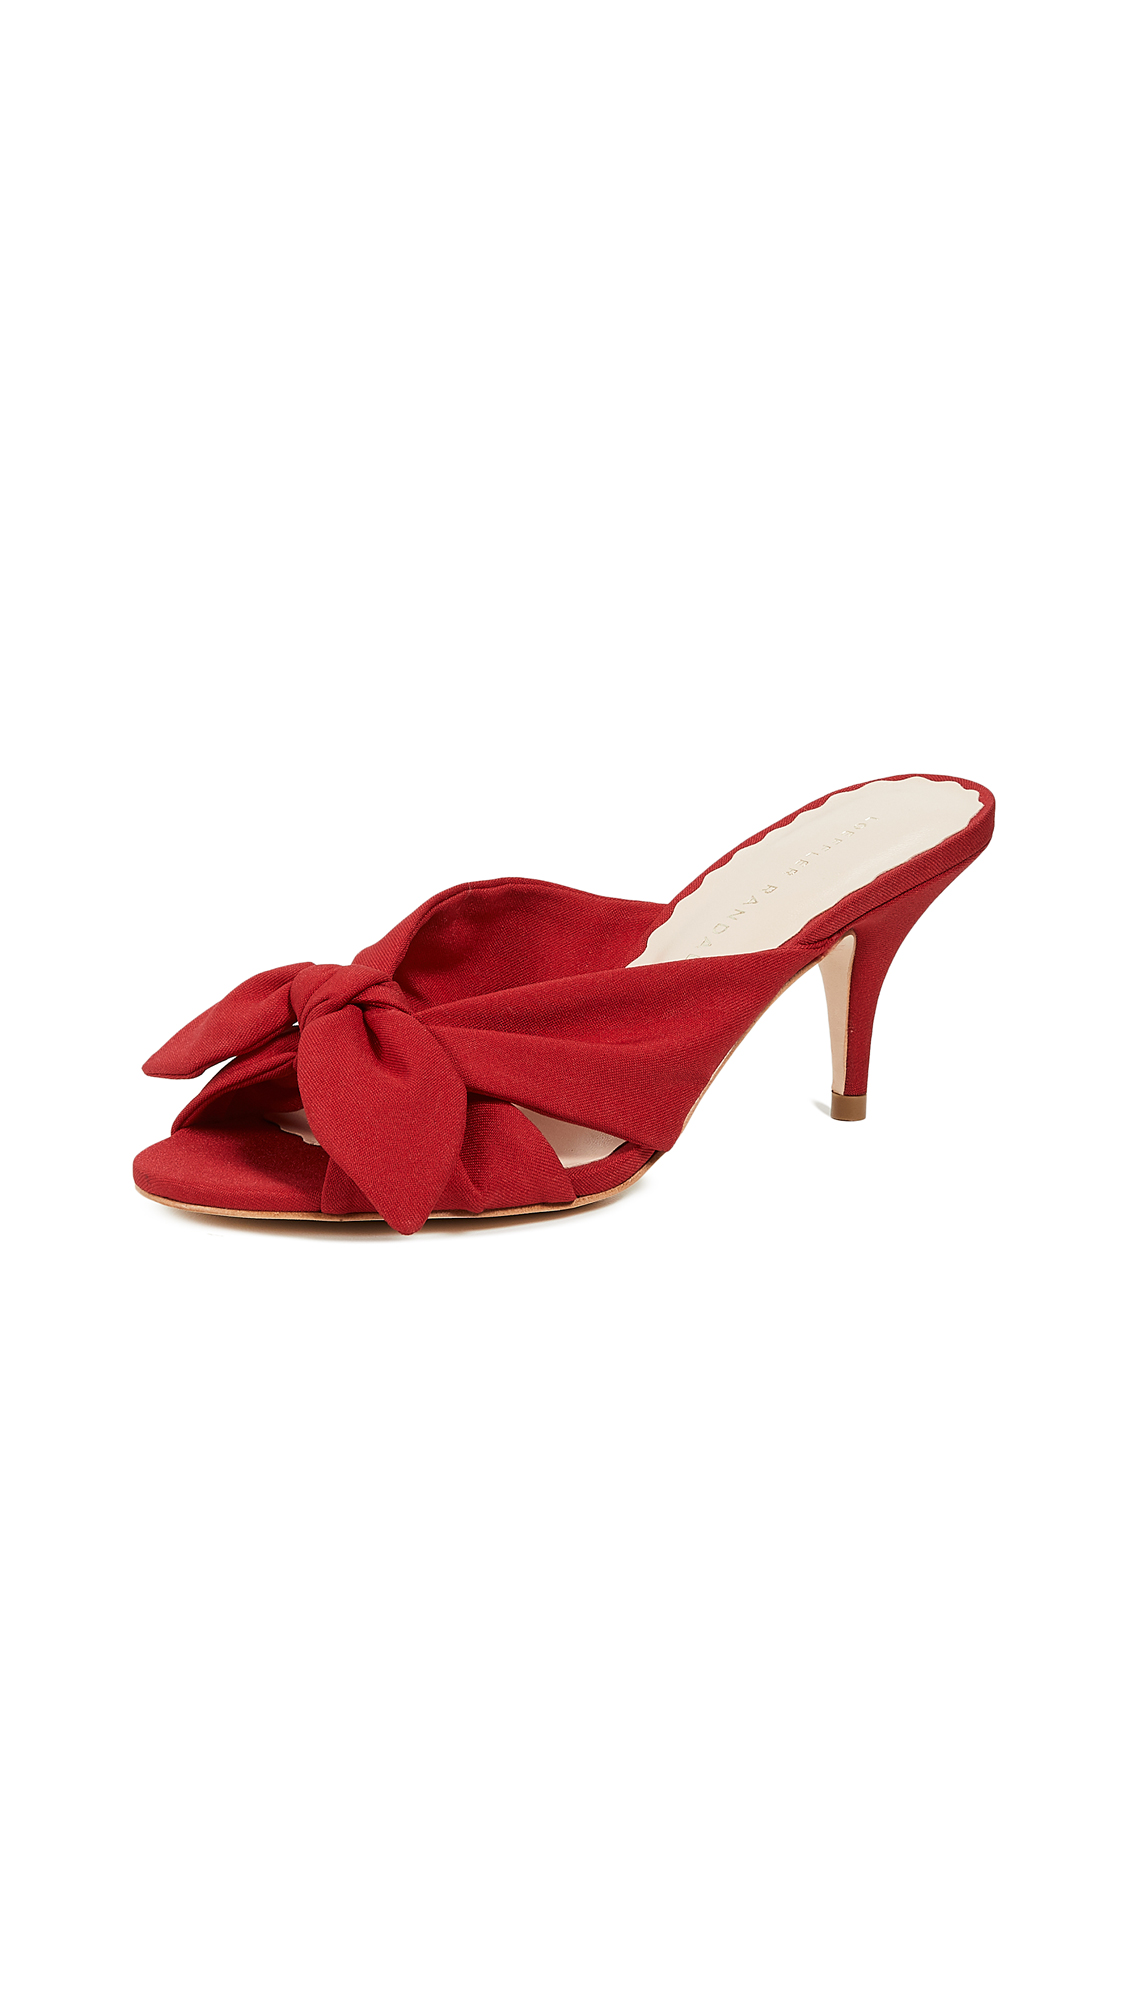 Loeffler Randall Luisa Knotted Kitten Heels - Bright Red